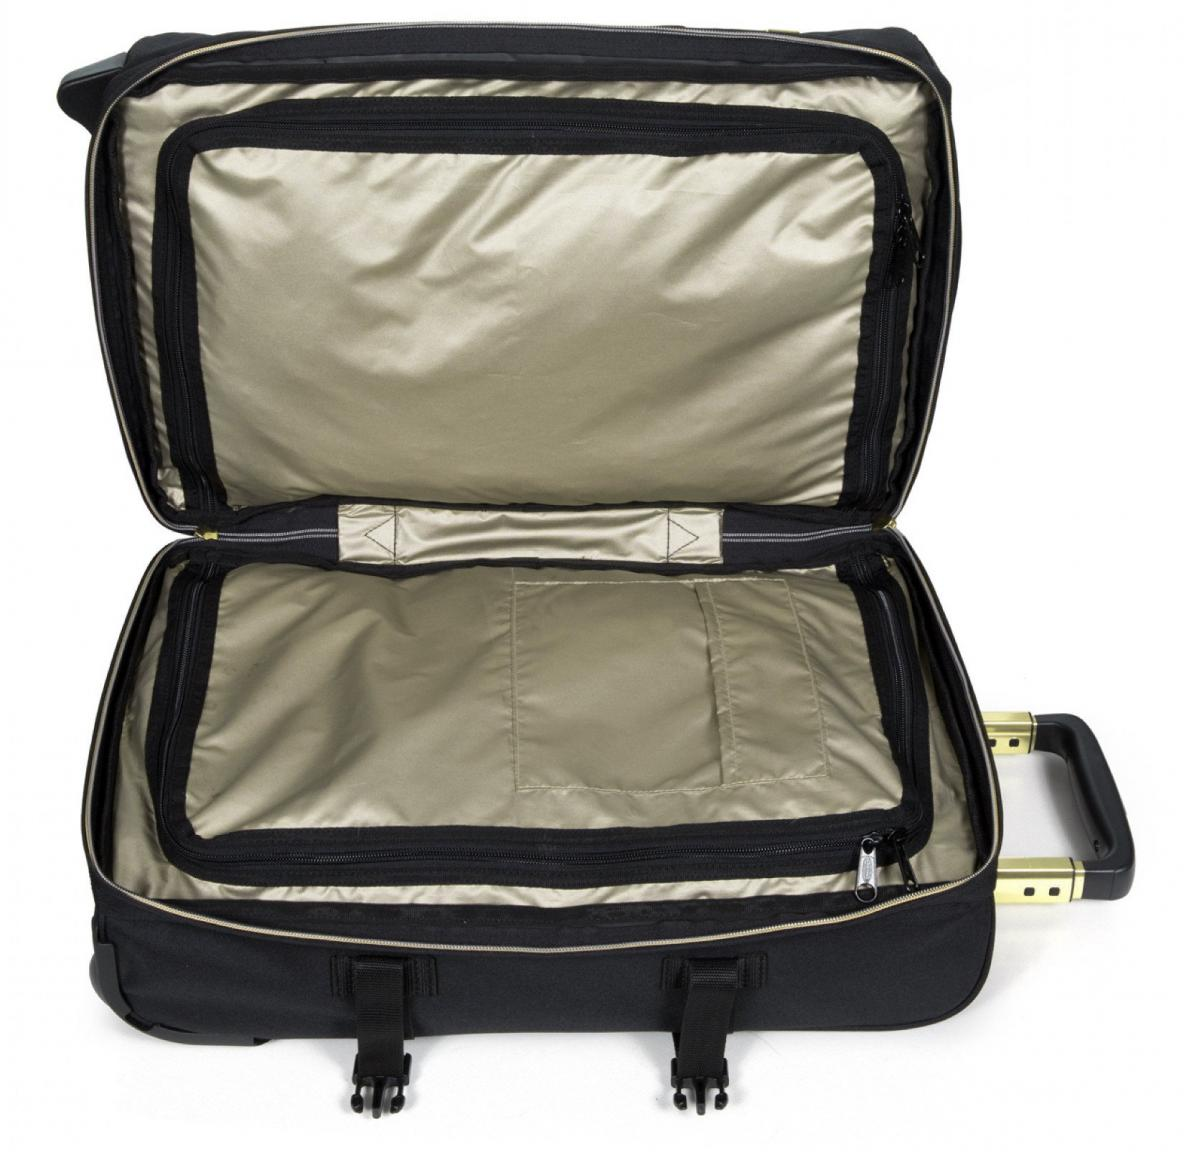 Bordtrolley Eastpak Tranverz S schwarz Gold Handgepäck